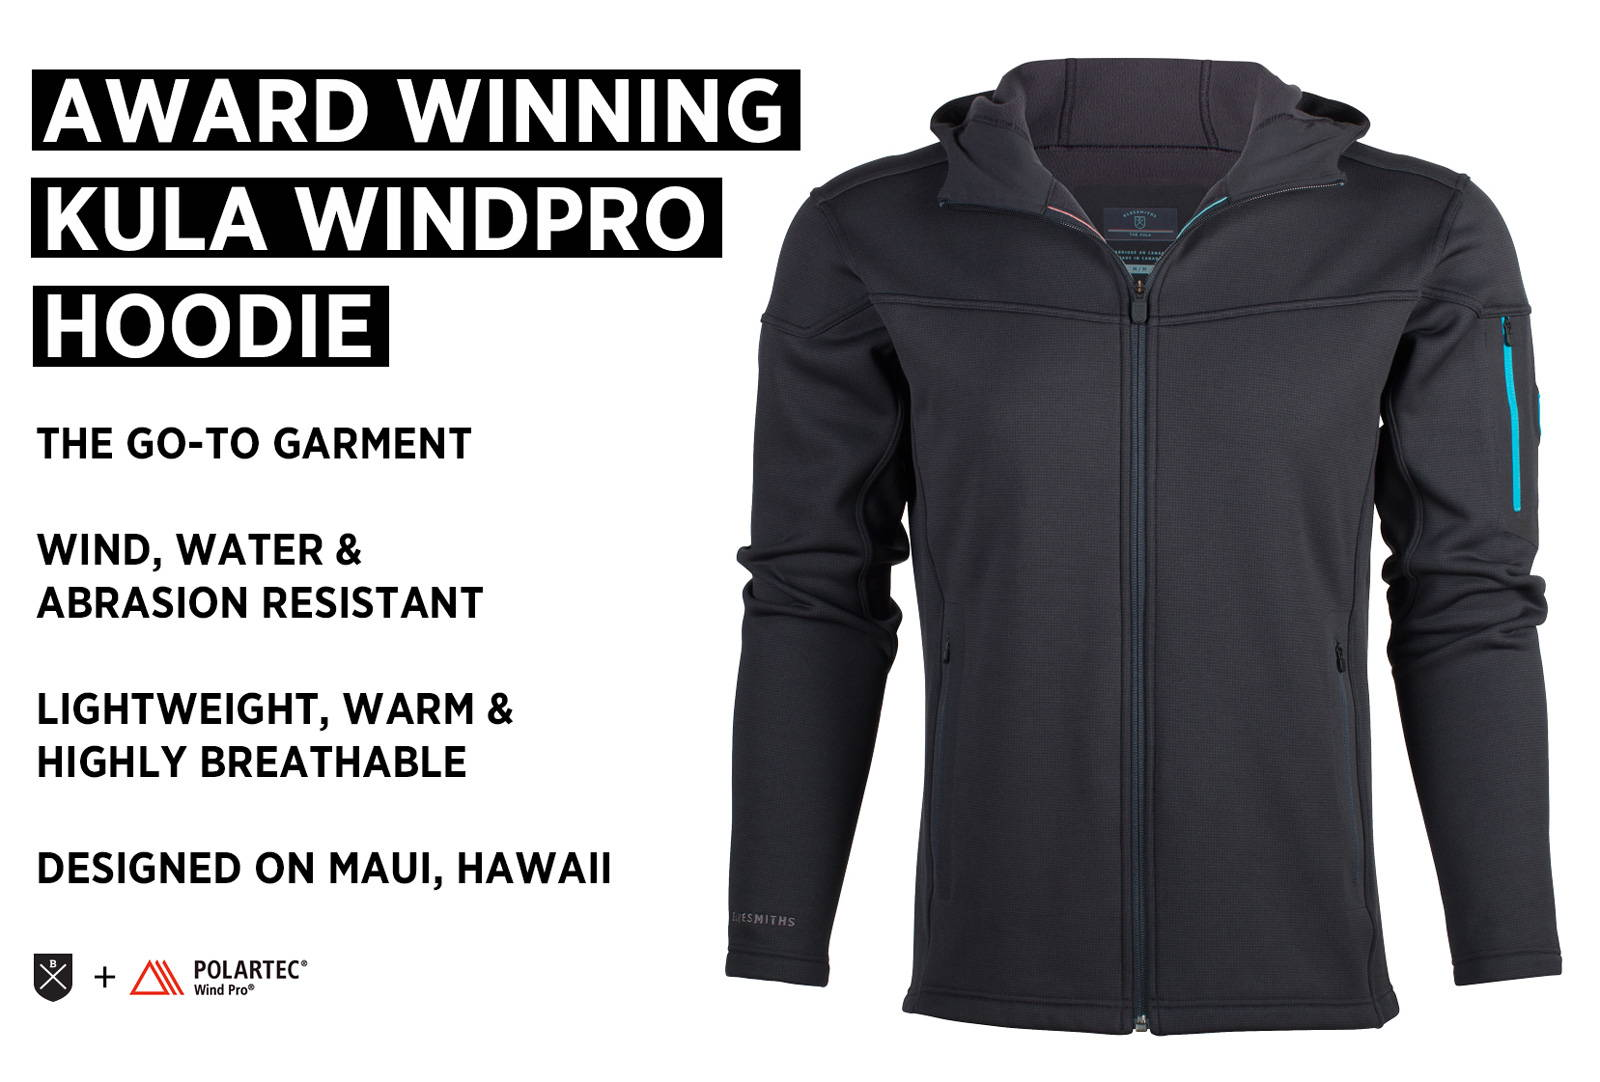 The award winning Bluesmiths Kula WindPro hoodie